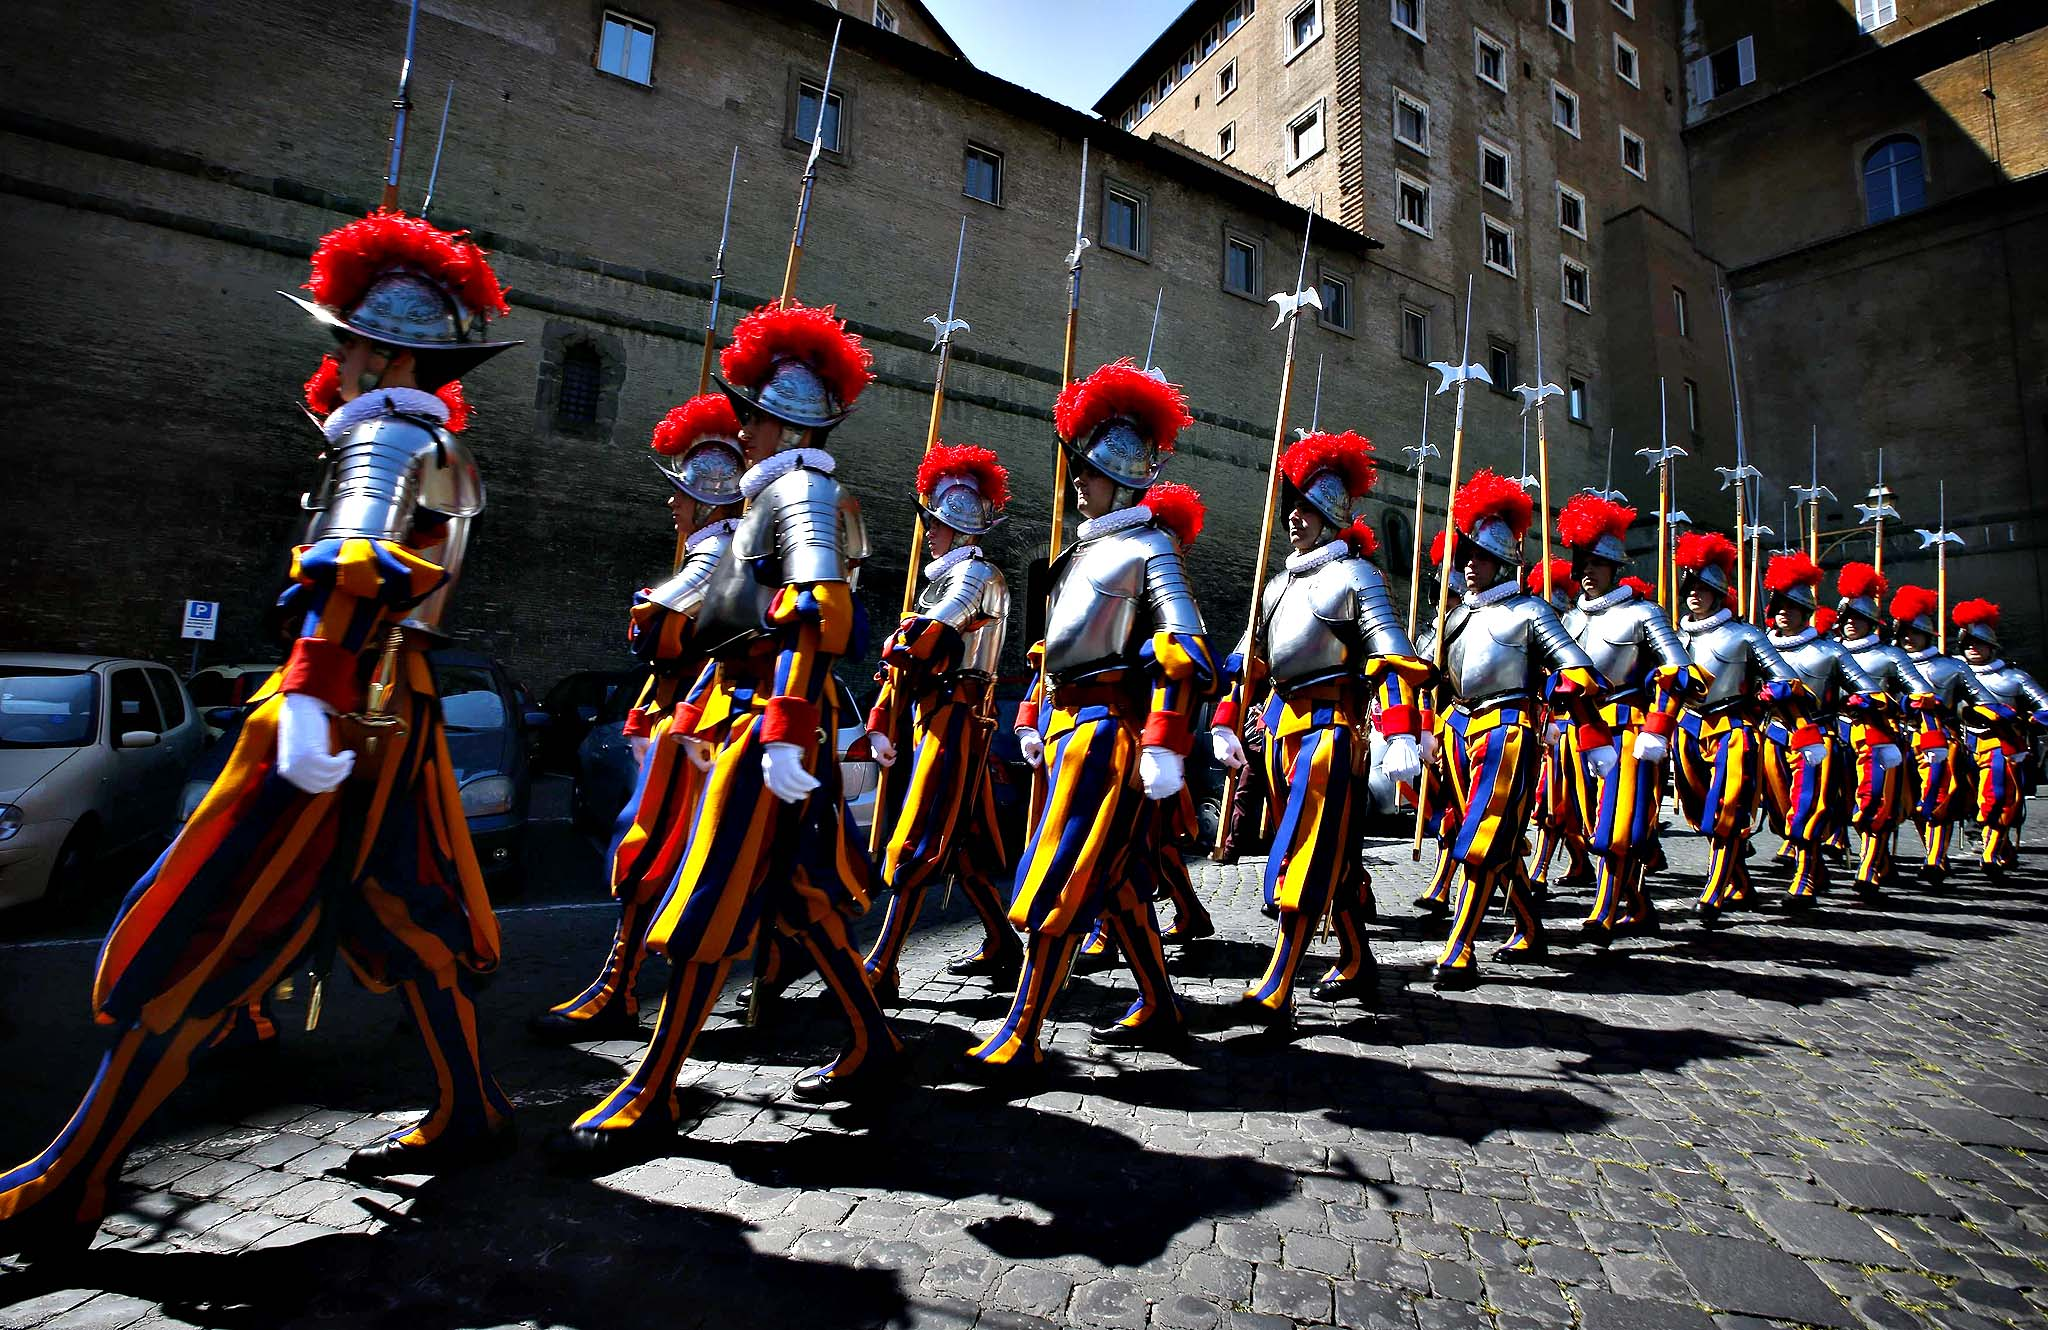 New recruits of the Vatican's elite Swiss Guard march during the swearing-in ceremony at the Vatican  May 6, 2014. The Swiss Guard, founded in 1506, consist of 100 volunteers who must be of Swiss nationality, Catholic, single, at least 174 cm (5.7 ft) tall and without a beard. New recruits are sworn in every year on May 6 to commemorate the day where 147 Swiss soldiers died defending the Pope during an attack on Rome in 1527.